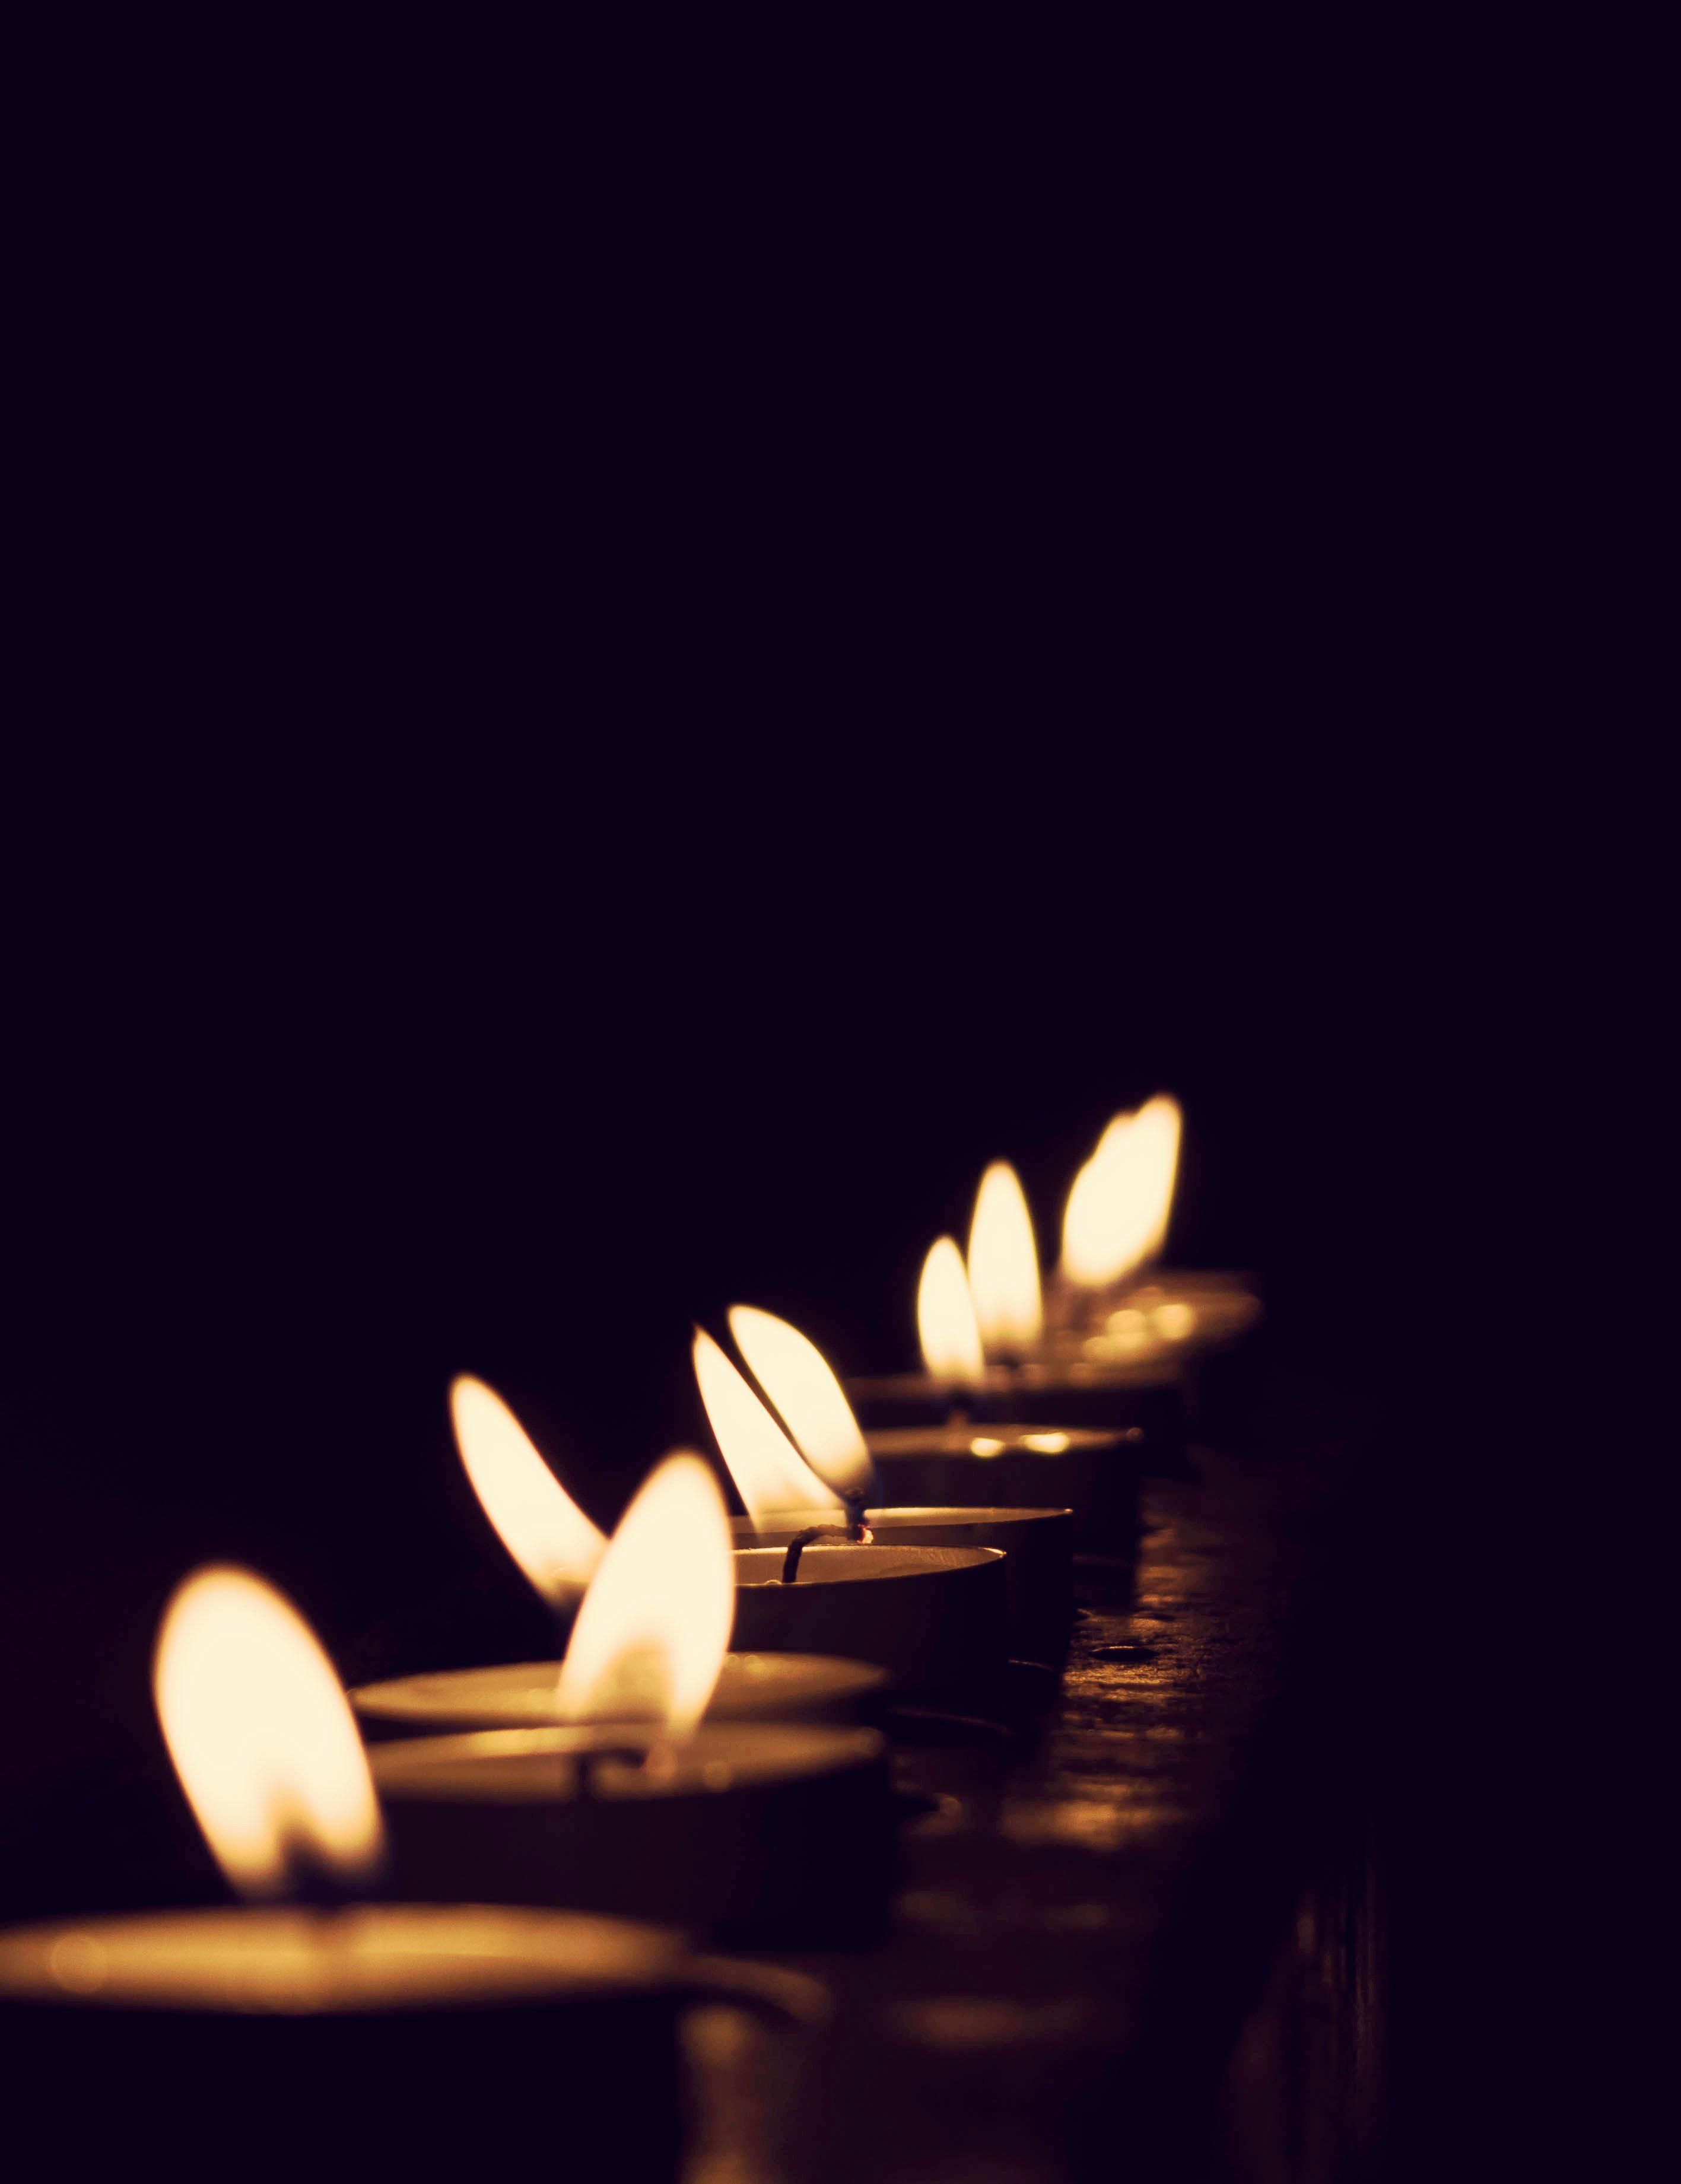 Itap Of A Candles Photo Background Editor Wallpaper Photohd Photonew Photobackground Pics Candles Wallpaper Dark Wallpaper Iphone Candle Background